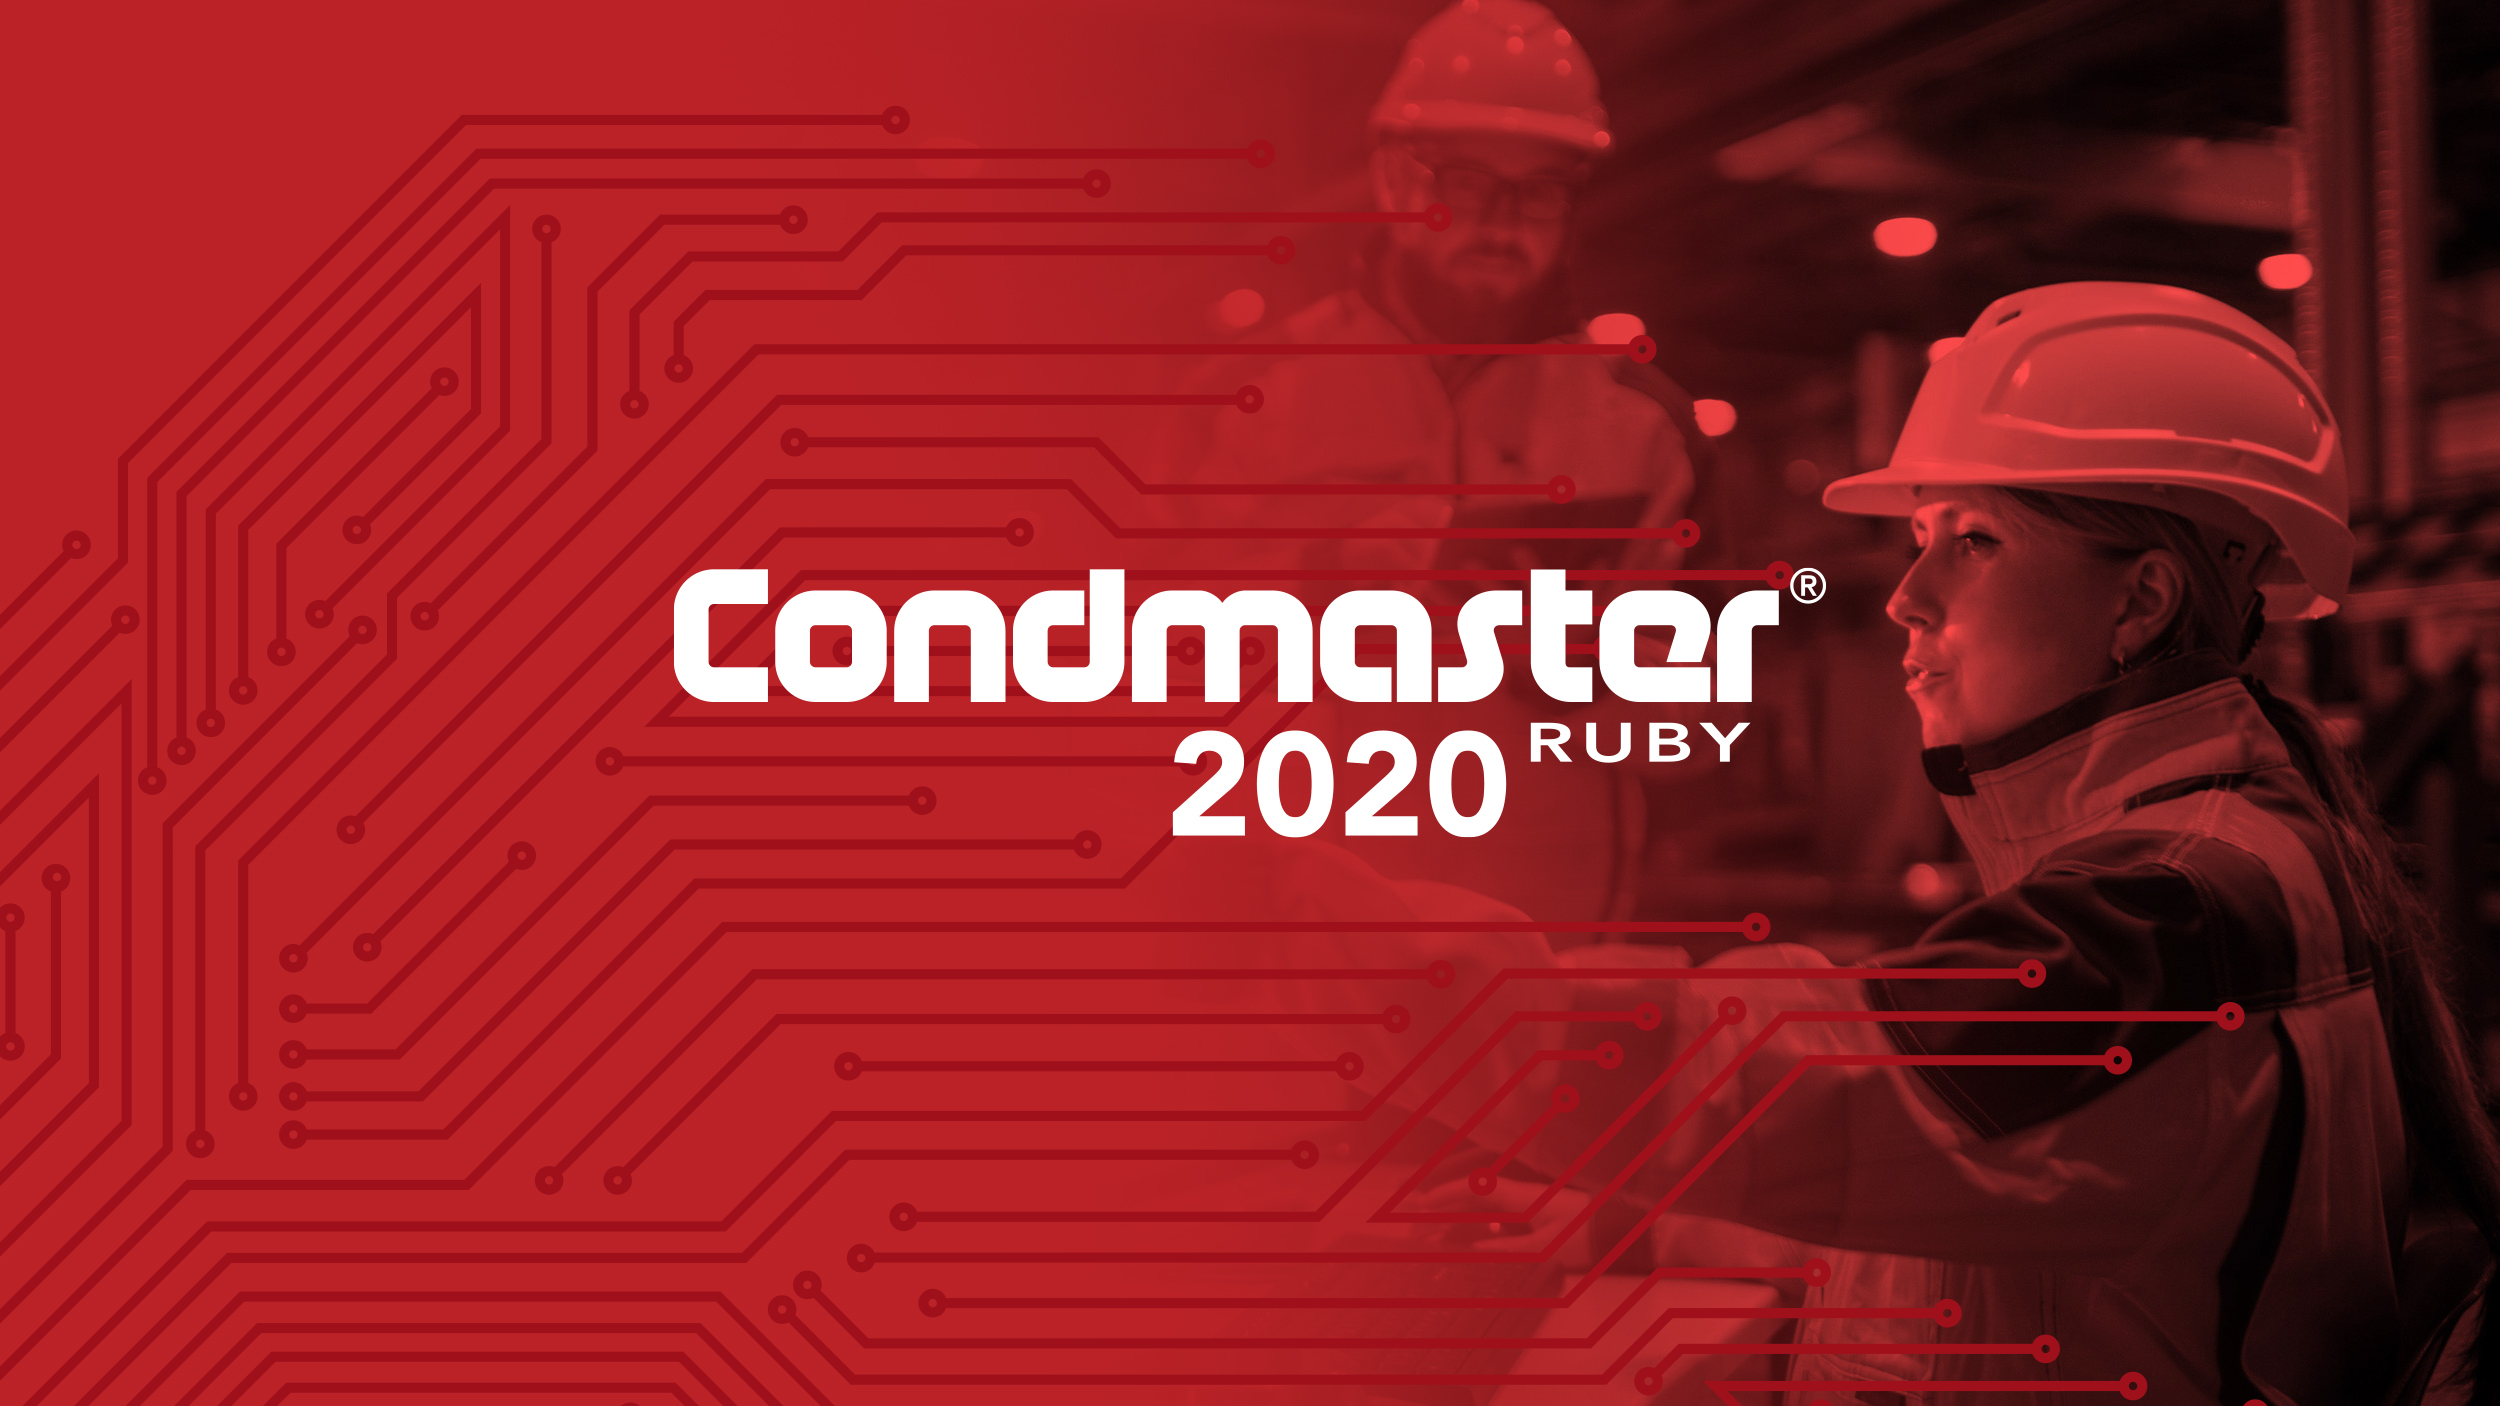 Condmaster Ruby 2020 logo on red signature background